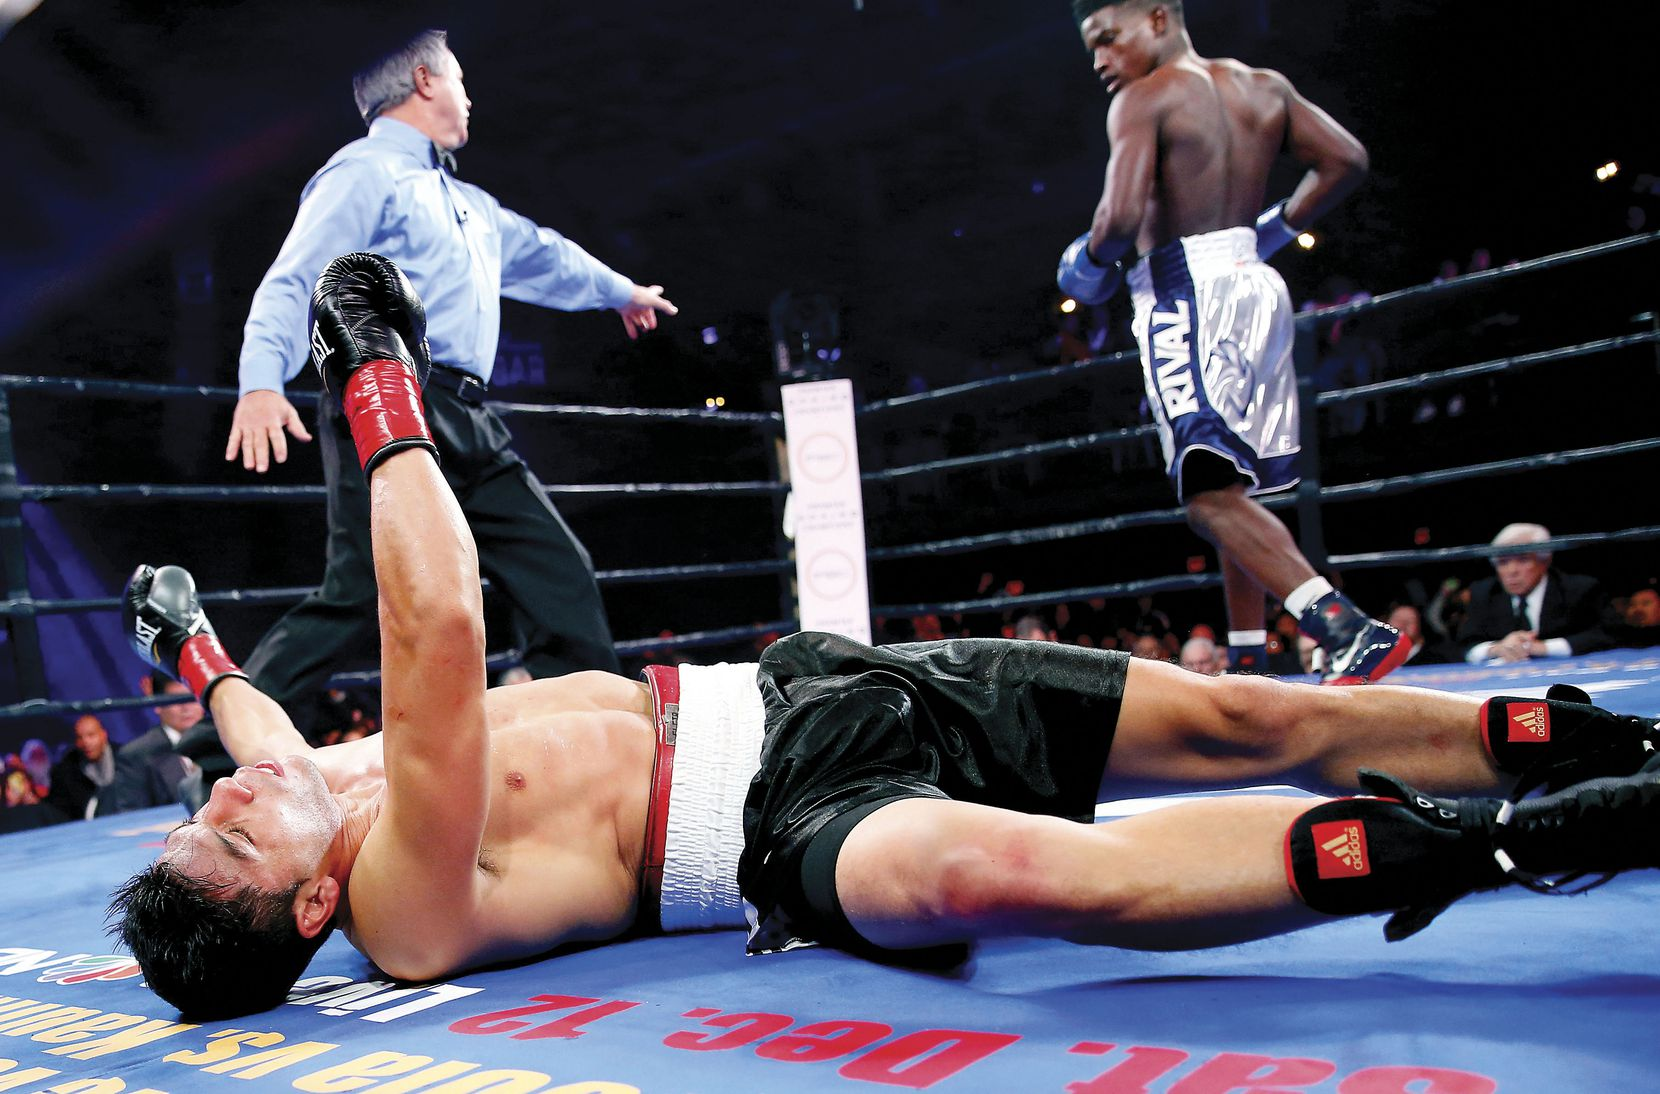 Erickson Lubin (right) walked to his corner after knocking out Alexis Camacho in the second round of their welterweight bout at the Bomb Factory in Dallas on Nov. 28.